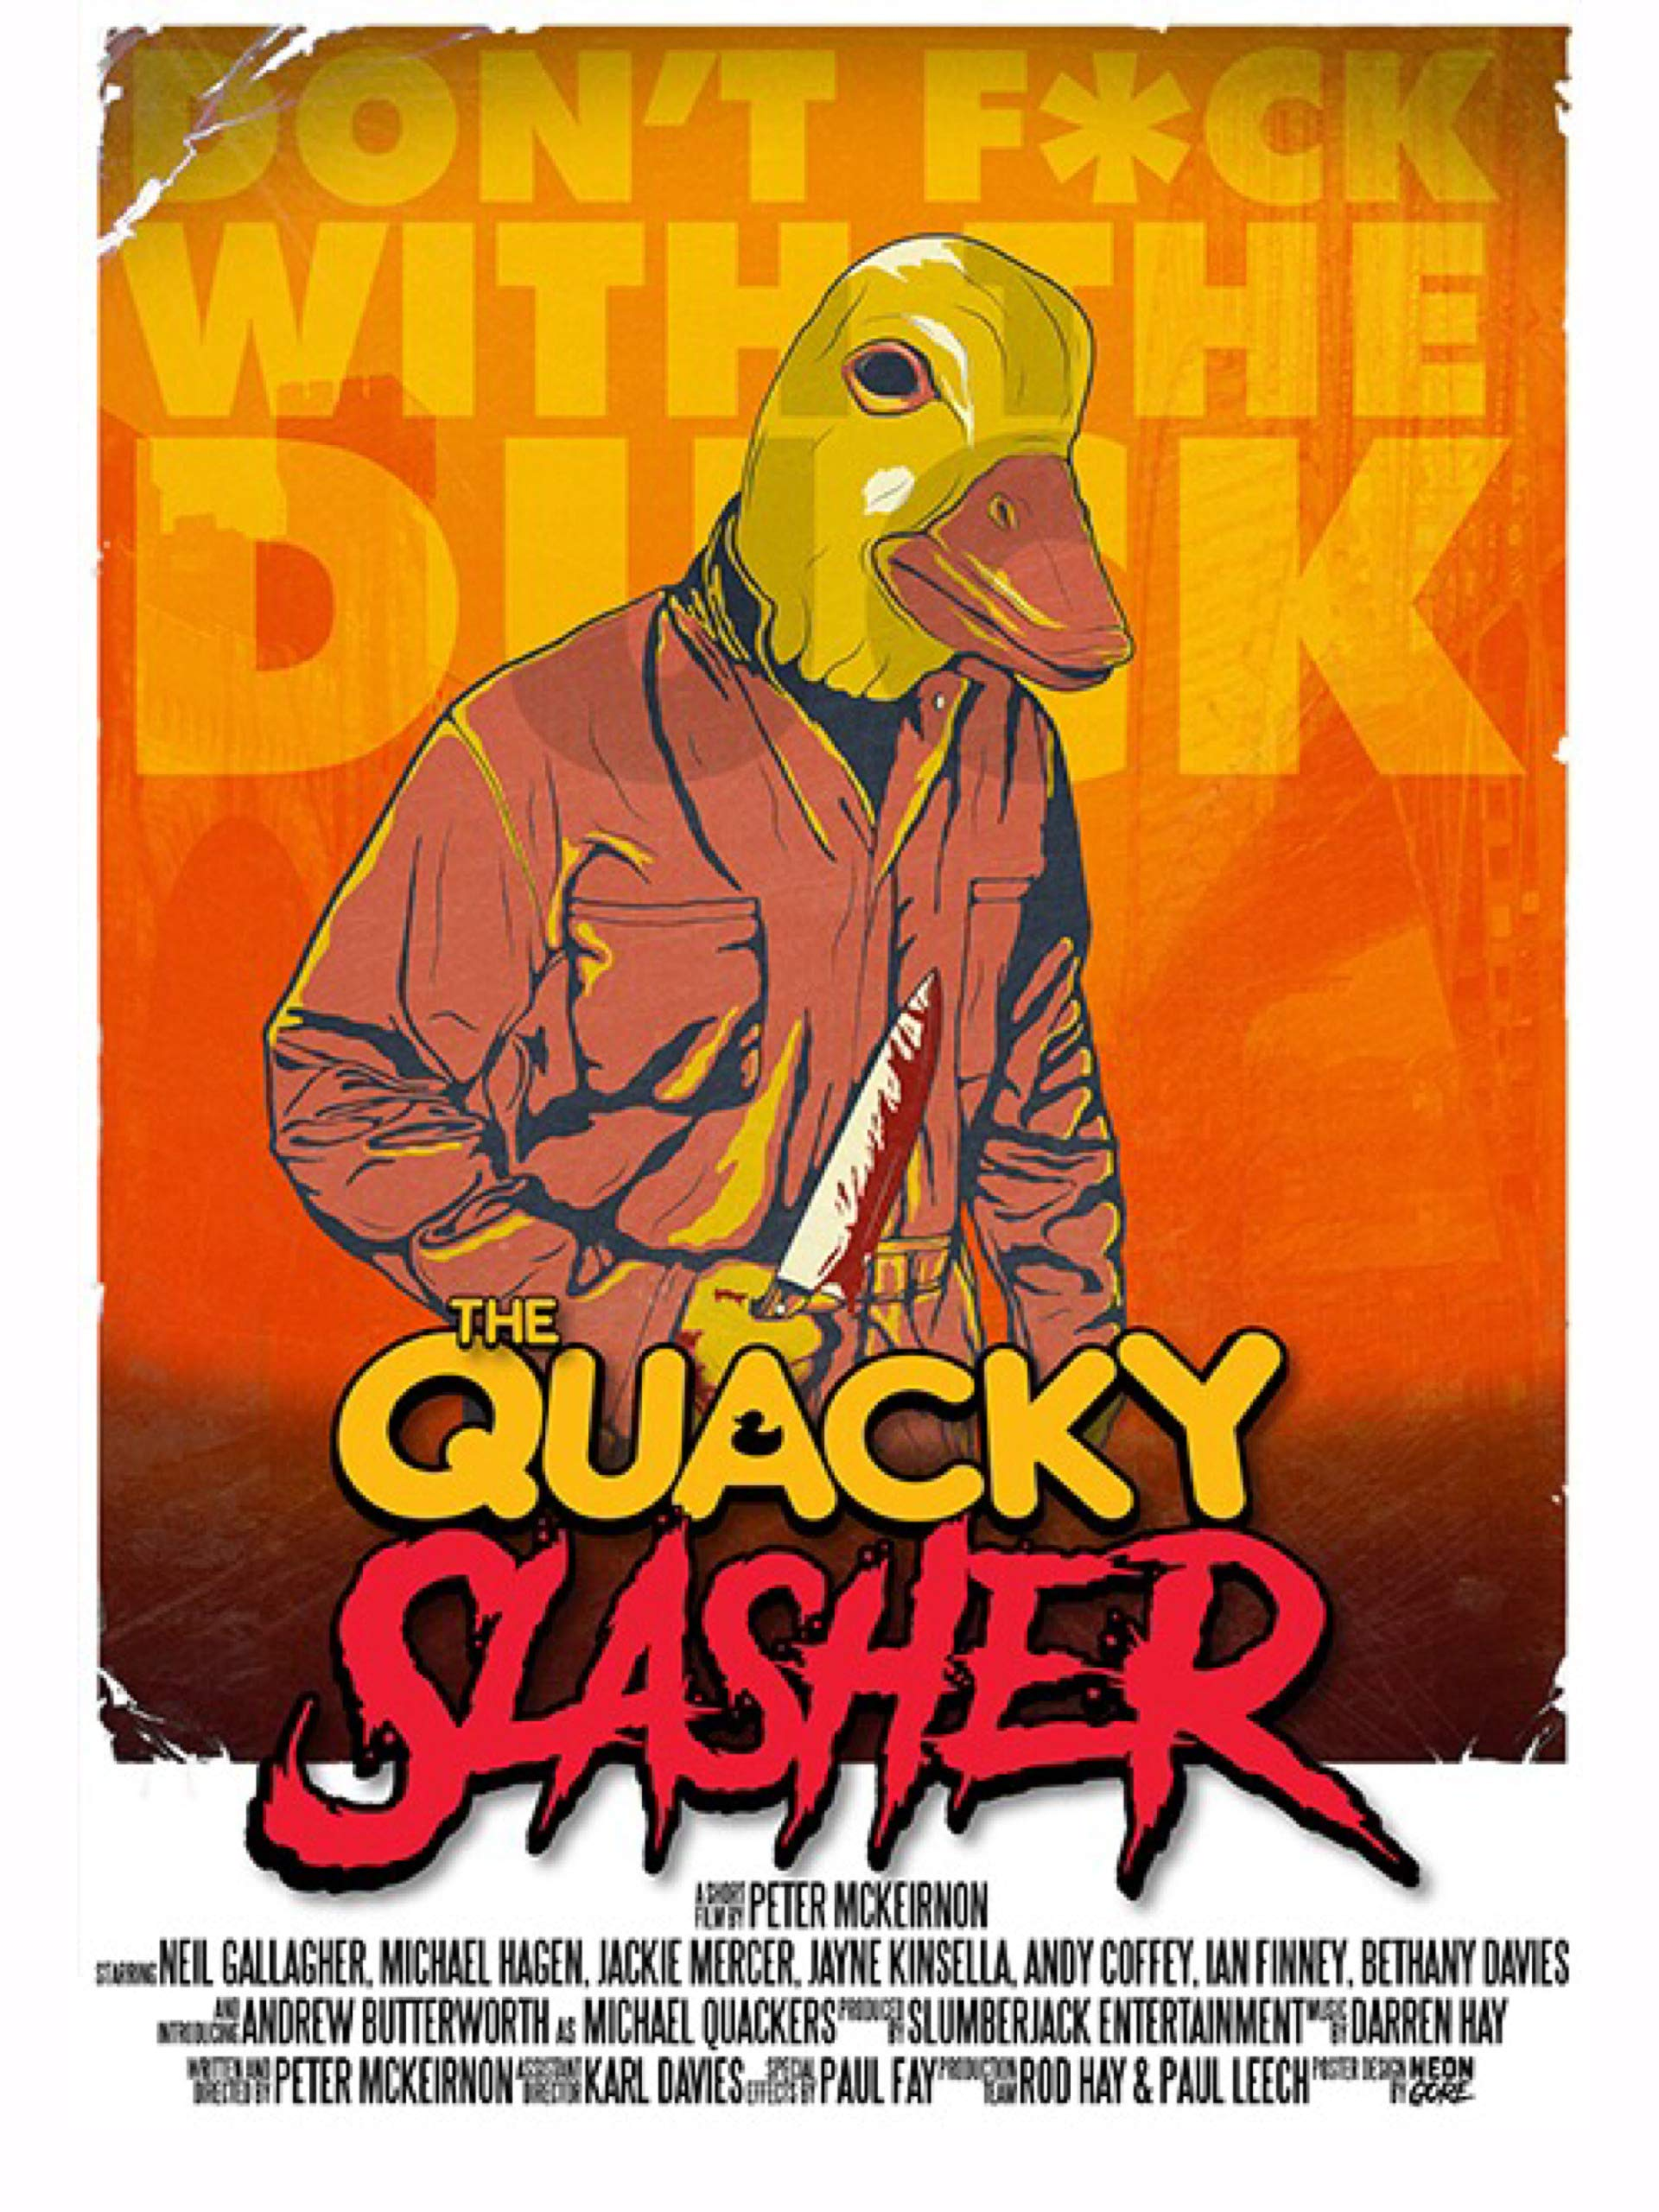 The Quacky Slasher